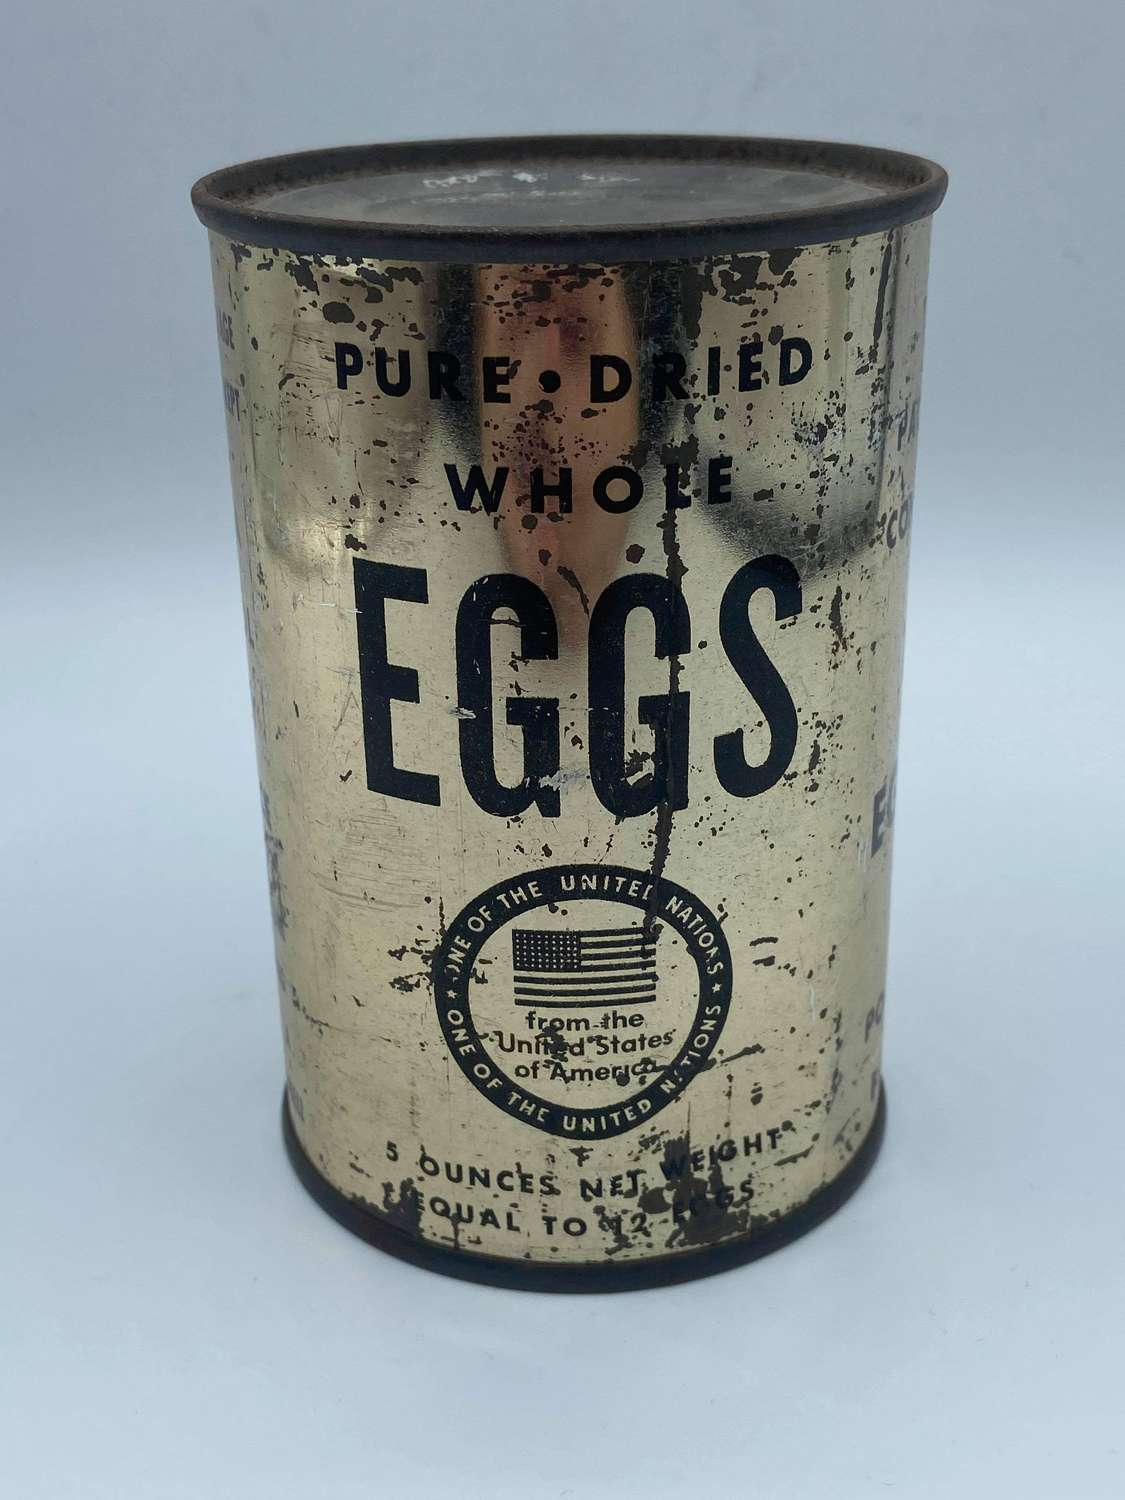 WW2 United States Army 1945 United Nations Dried Whole Eggs Unopened